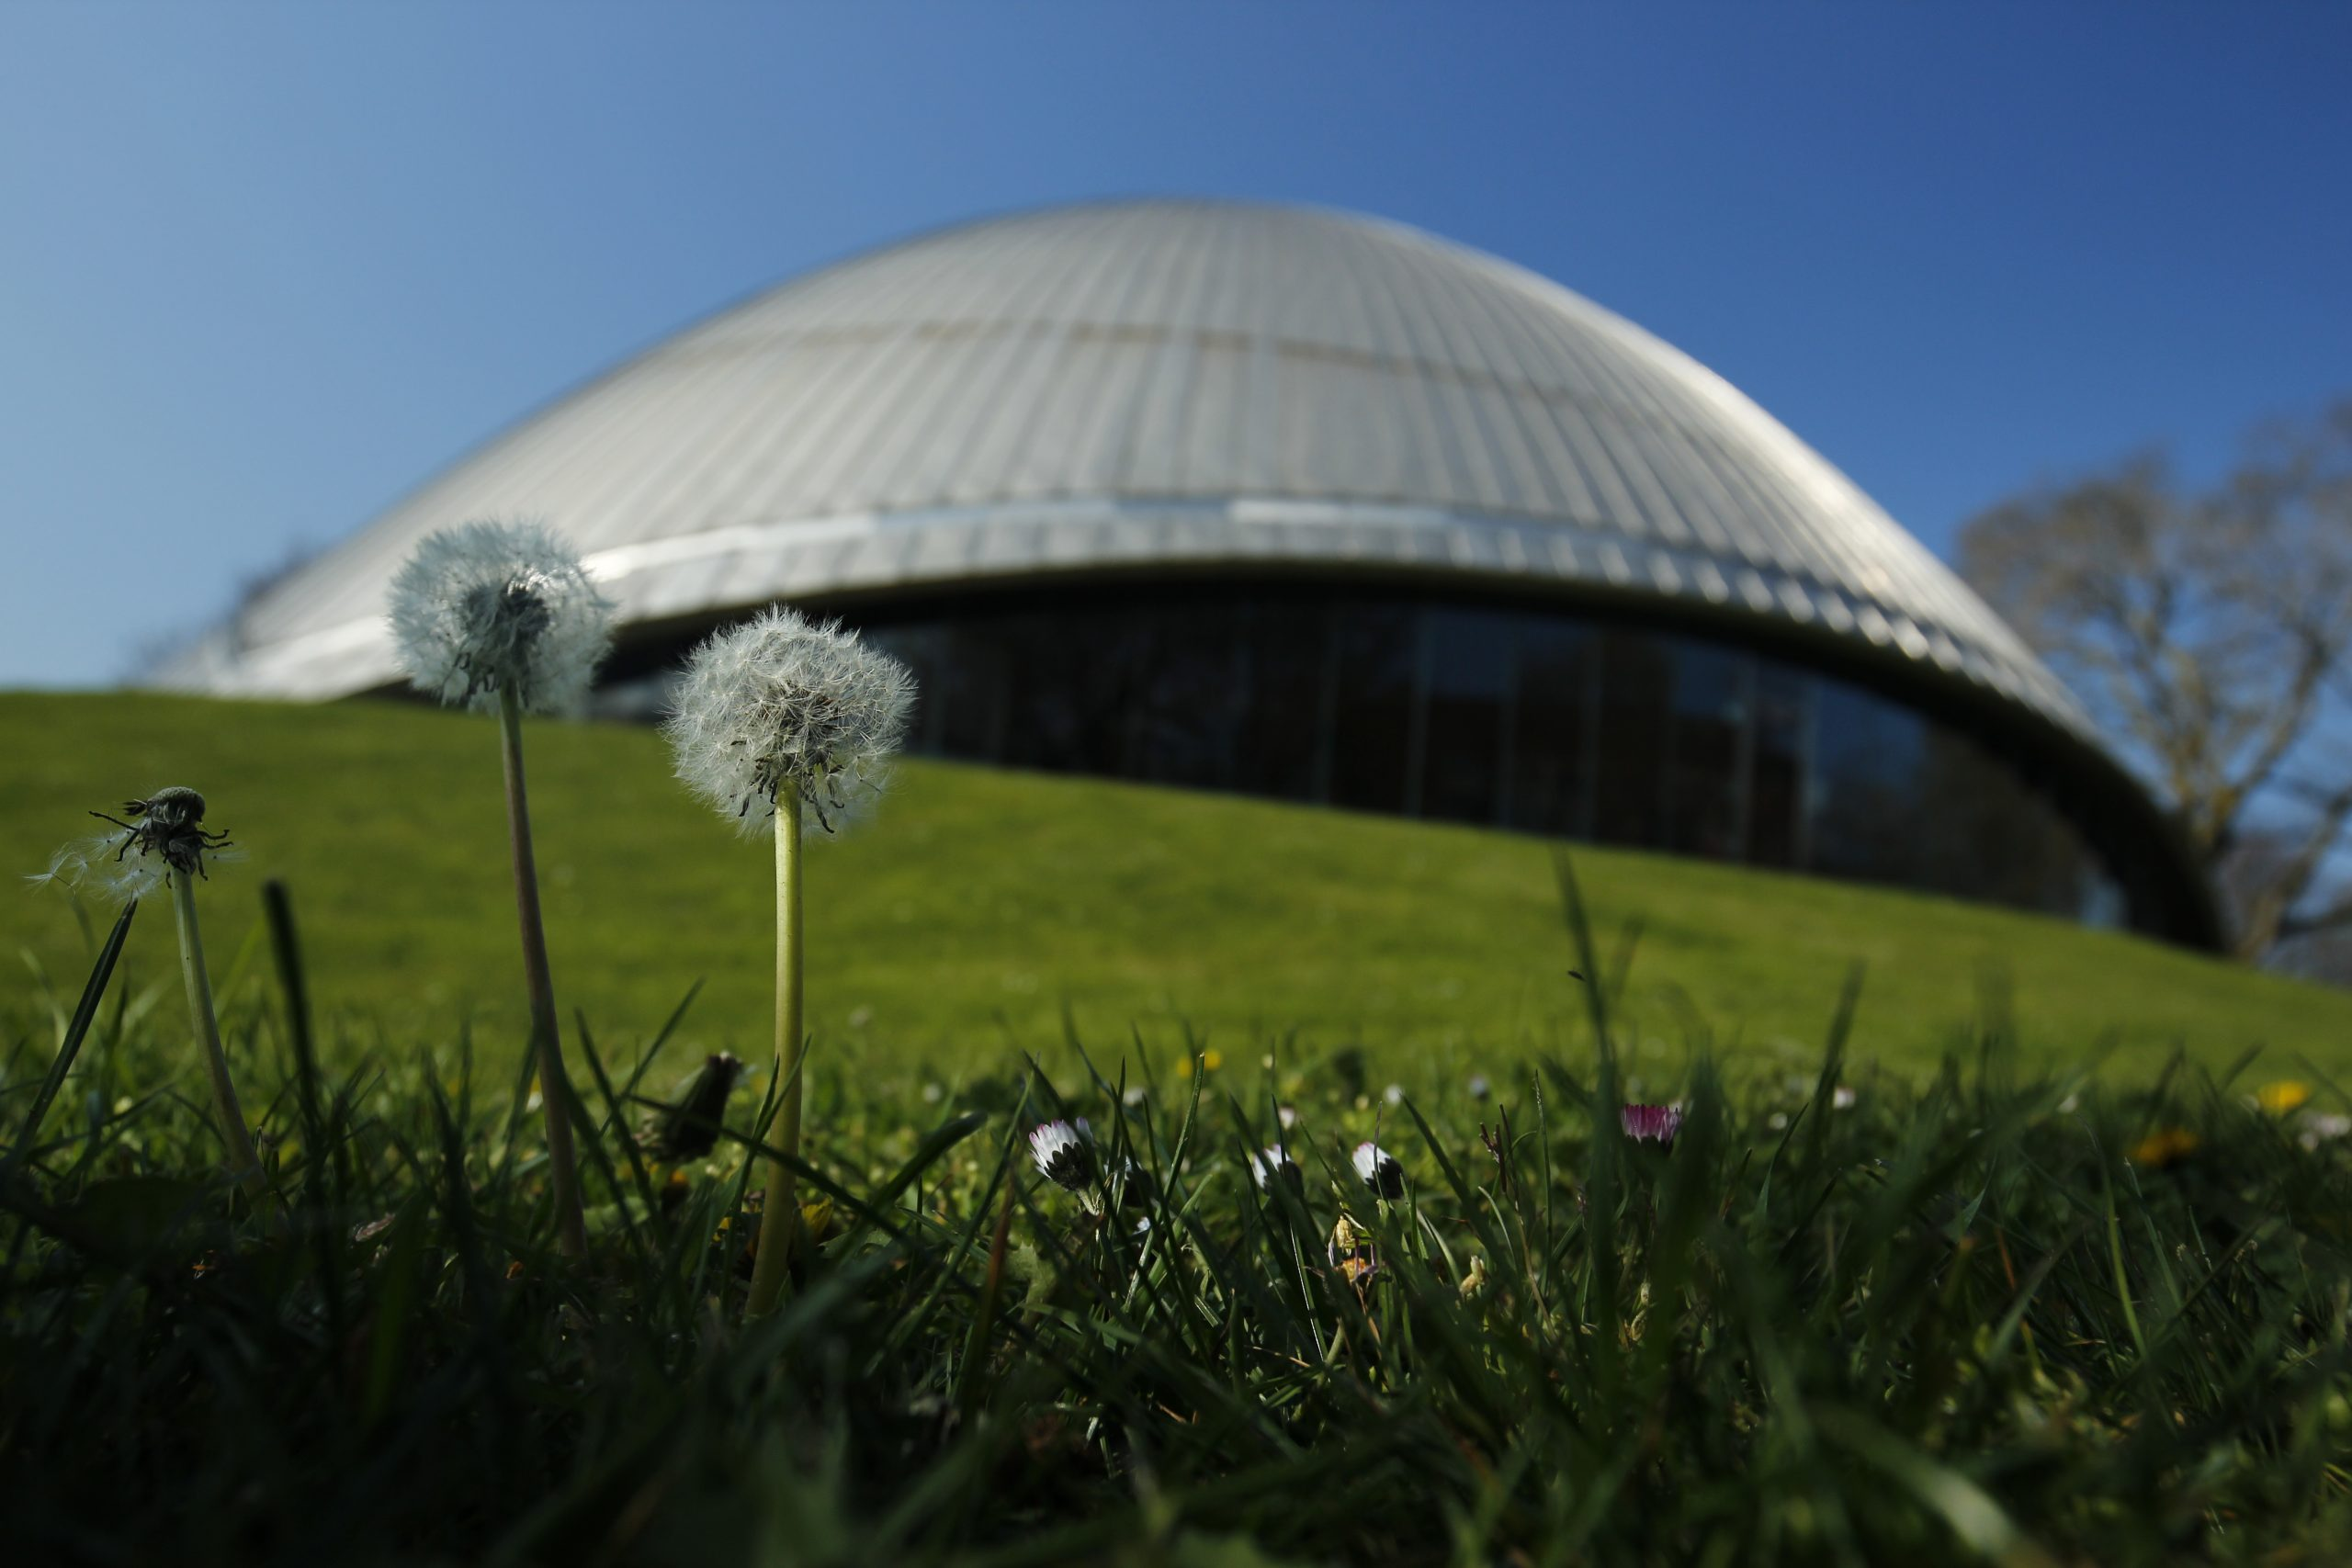 Close-up of a dandelion in a meadow in front of the Zeiss Planetarium Bochum. The building itself is blurred in the background.